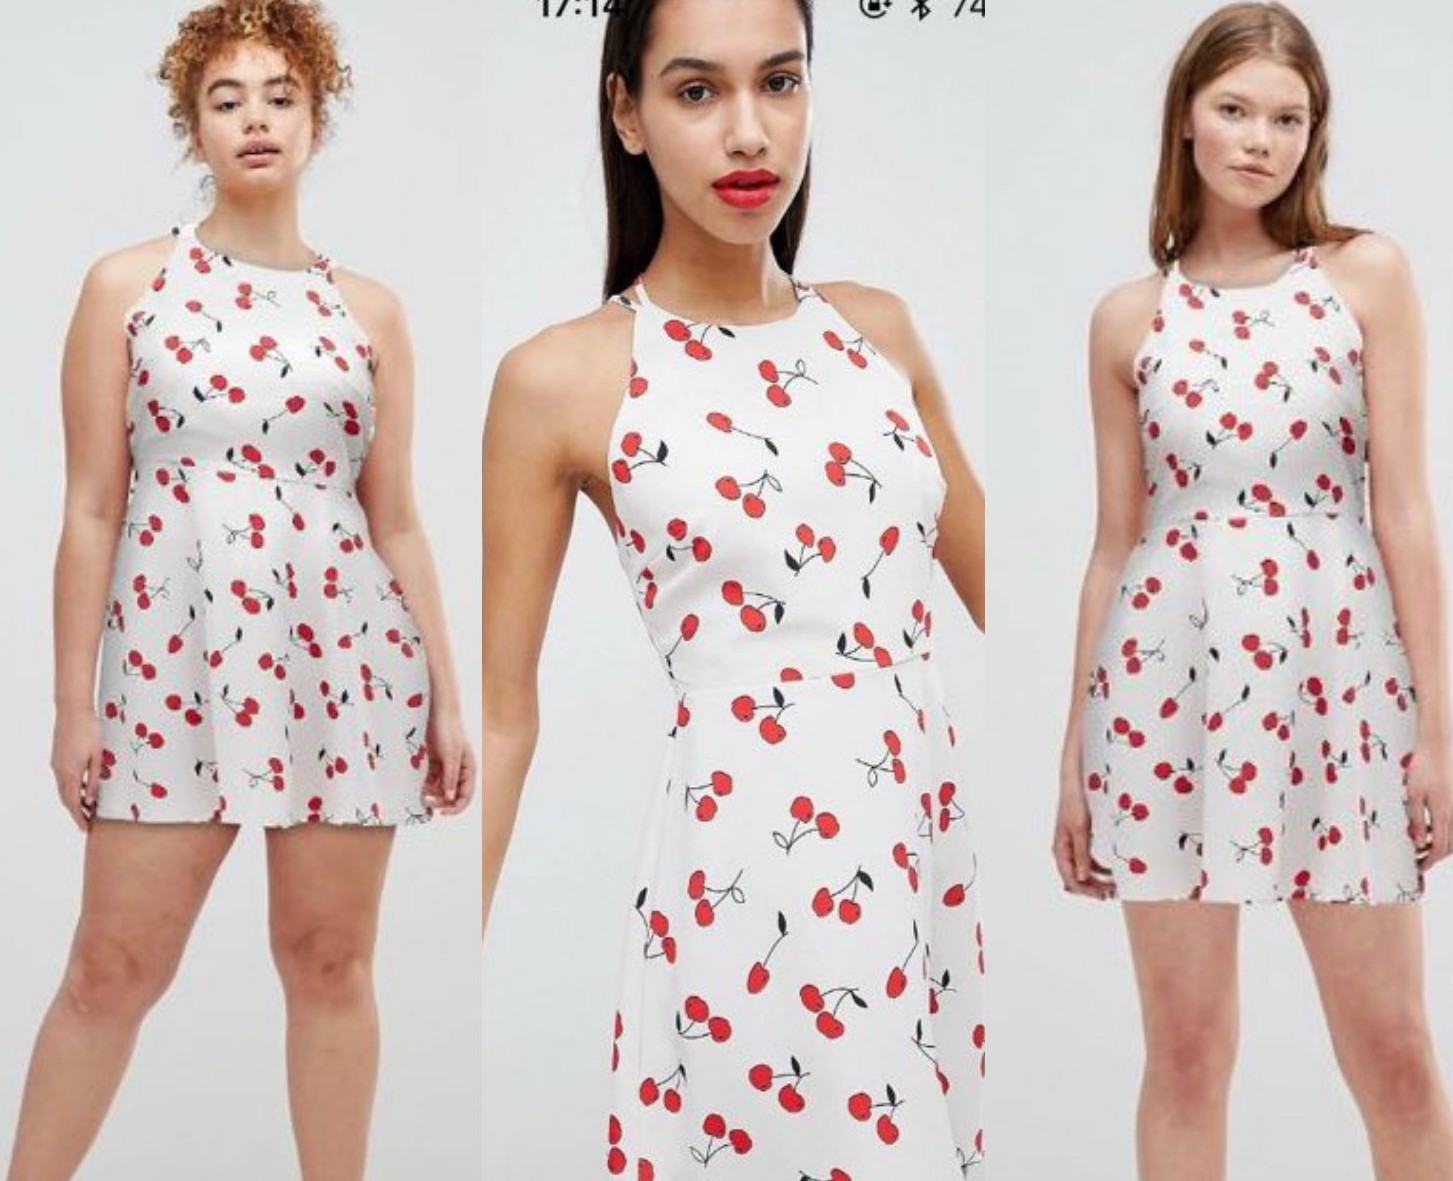 The ASOS app now shows how an item looks on different body types, and we'll shop to that